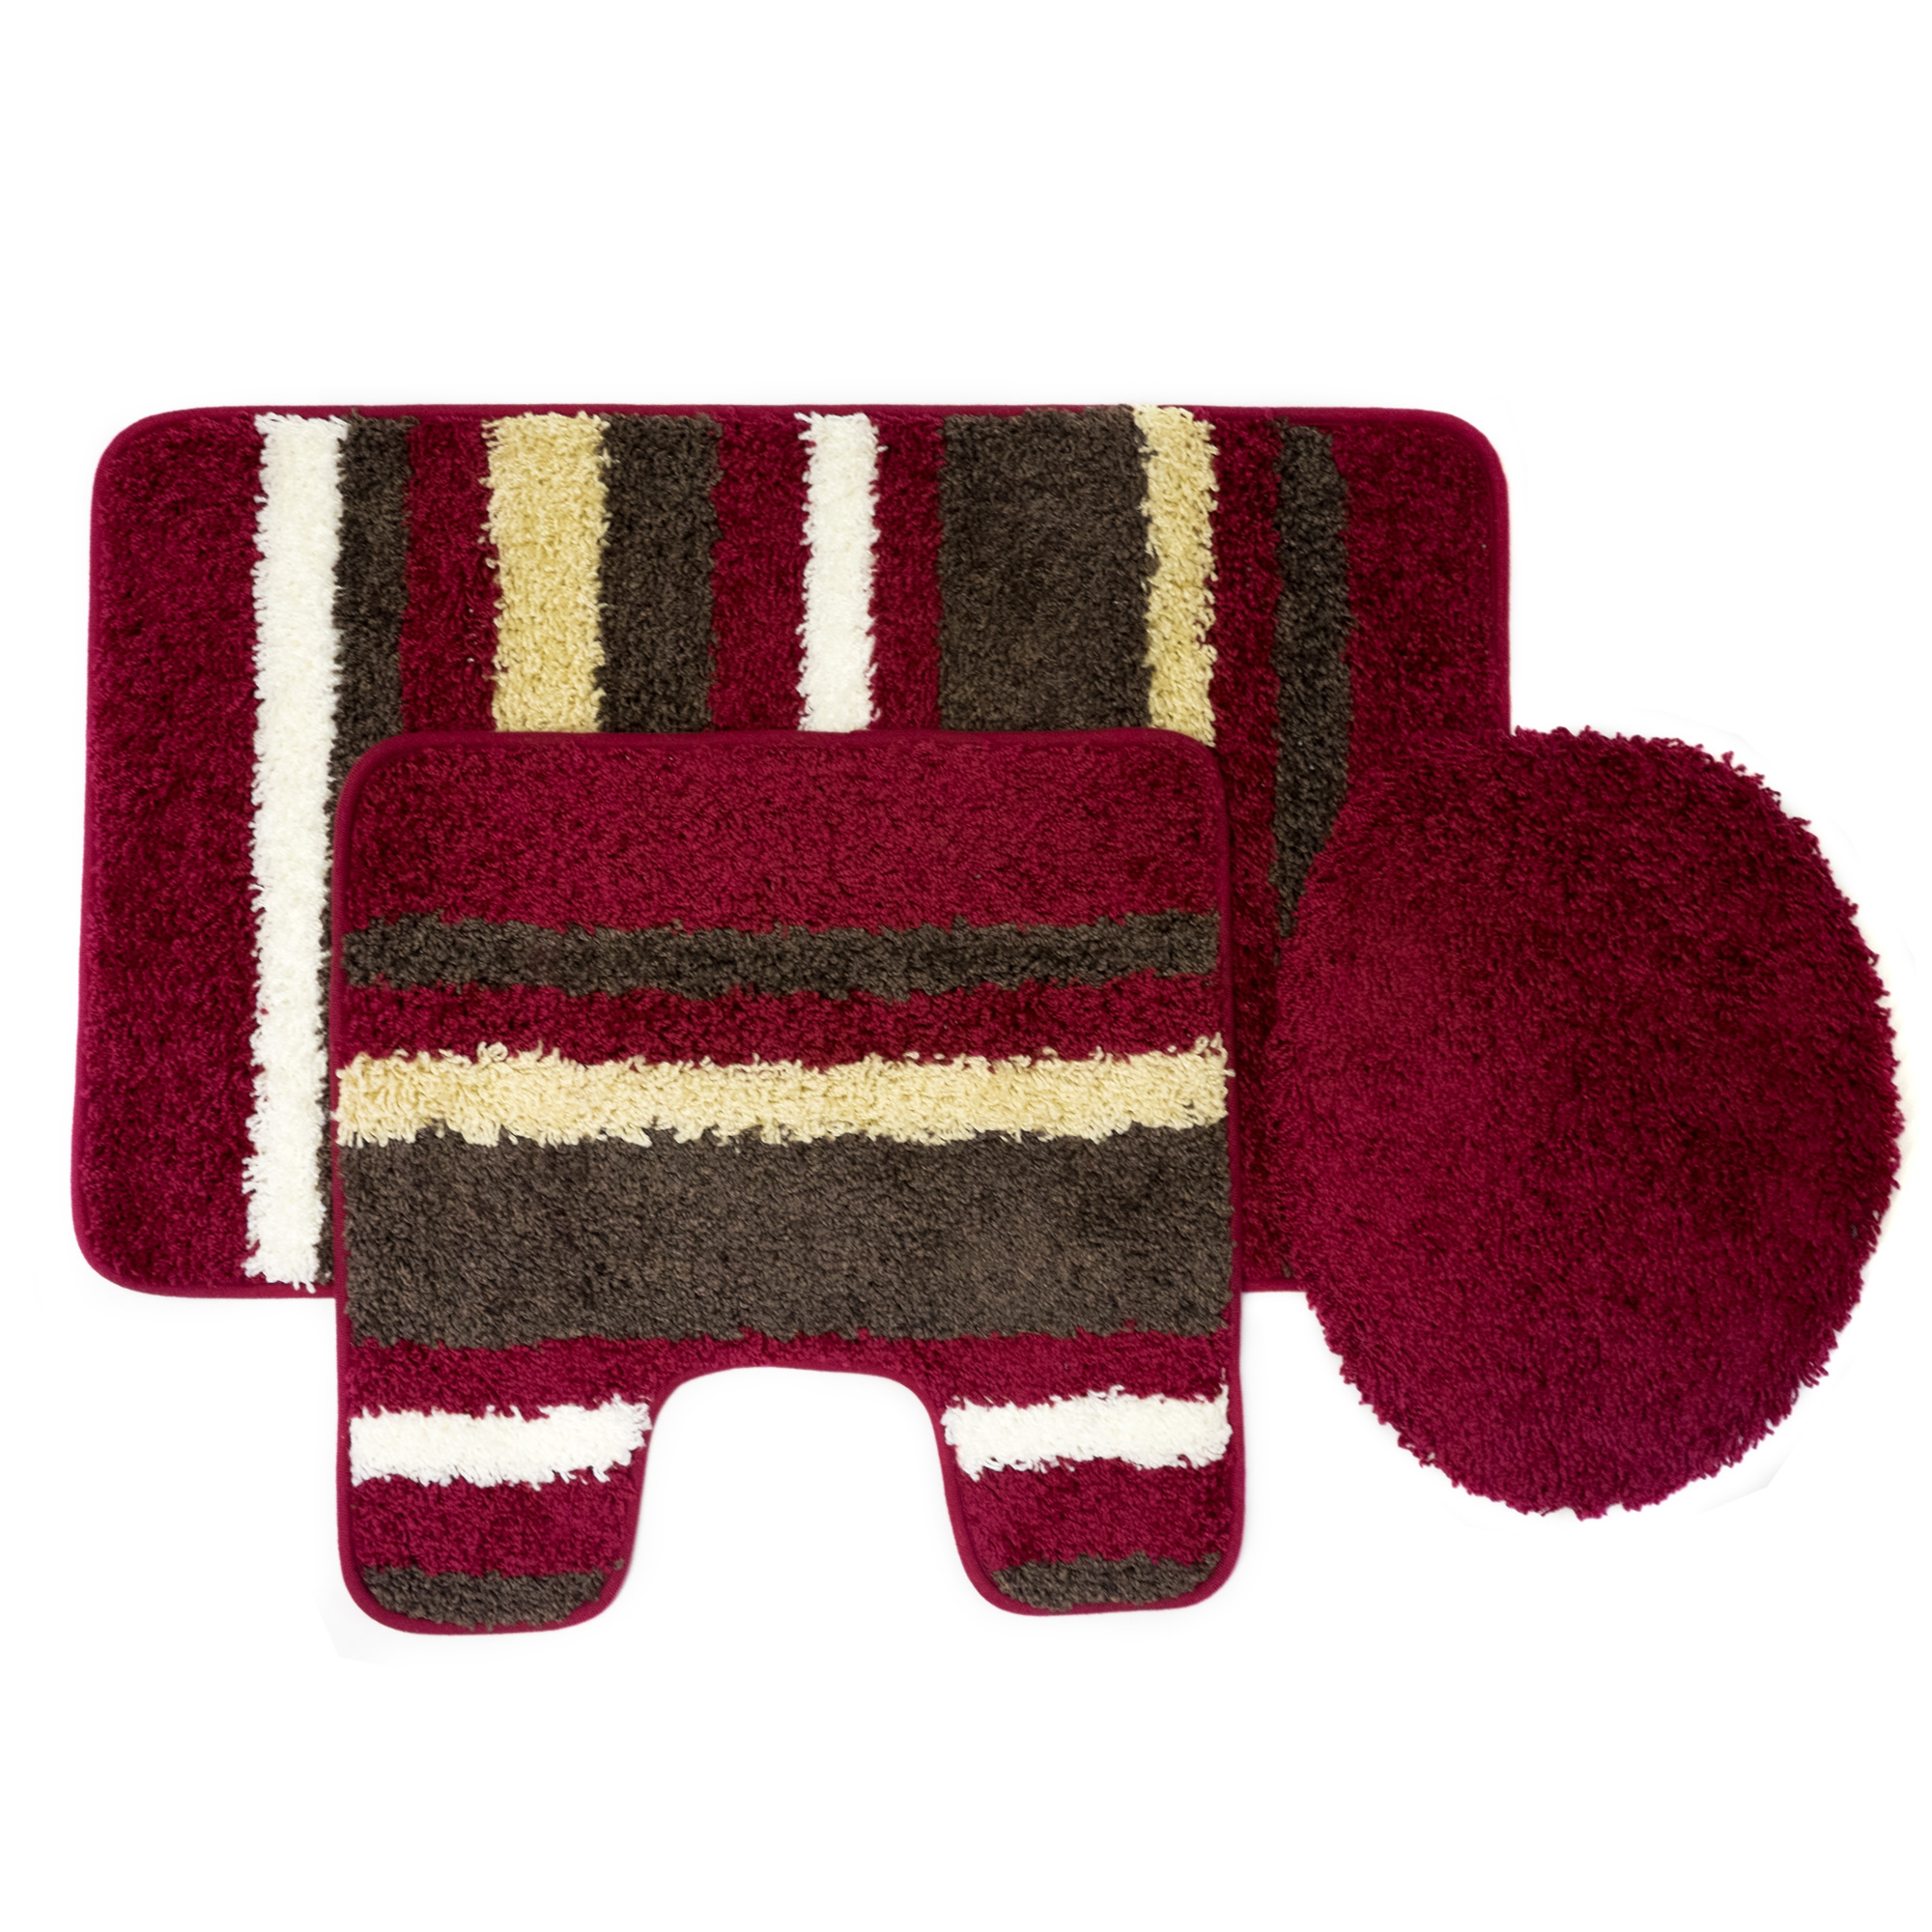 Cyprus 3 Piece Striped Bathroom Rug Mat Set Rug, Contour & Lid Cover by Popular Bath Products